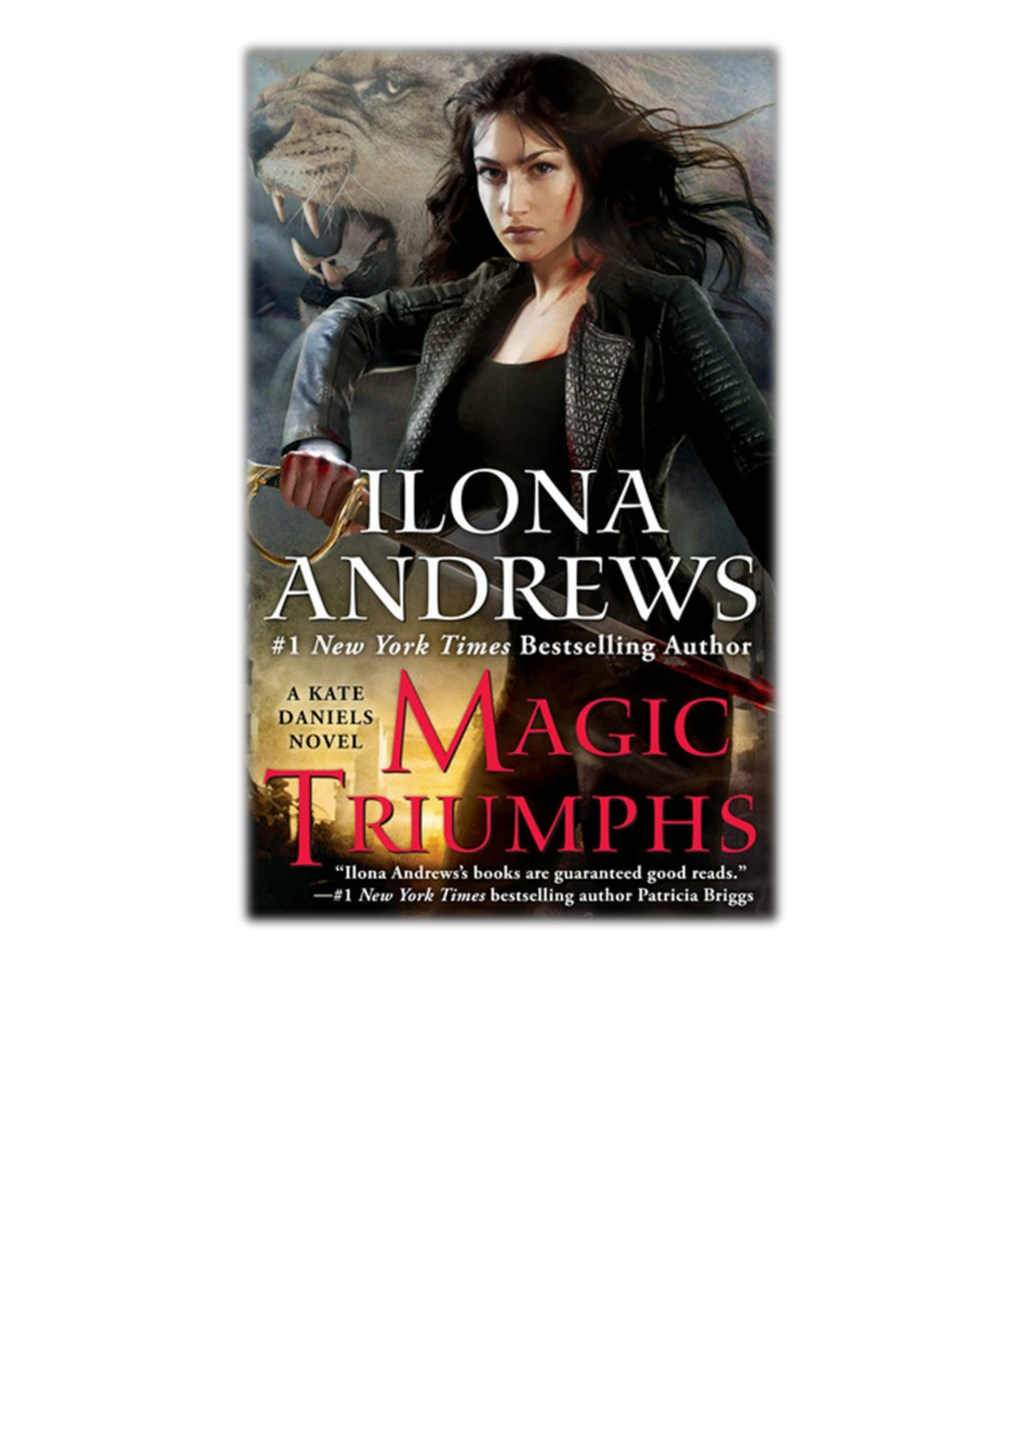 Catherine Coulter Libros Ppt Pdf Free Download Magic Triumphs By Ilona Andrews